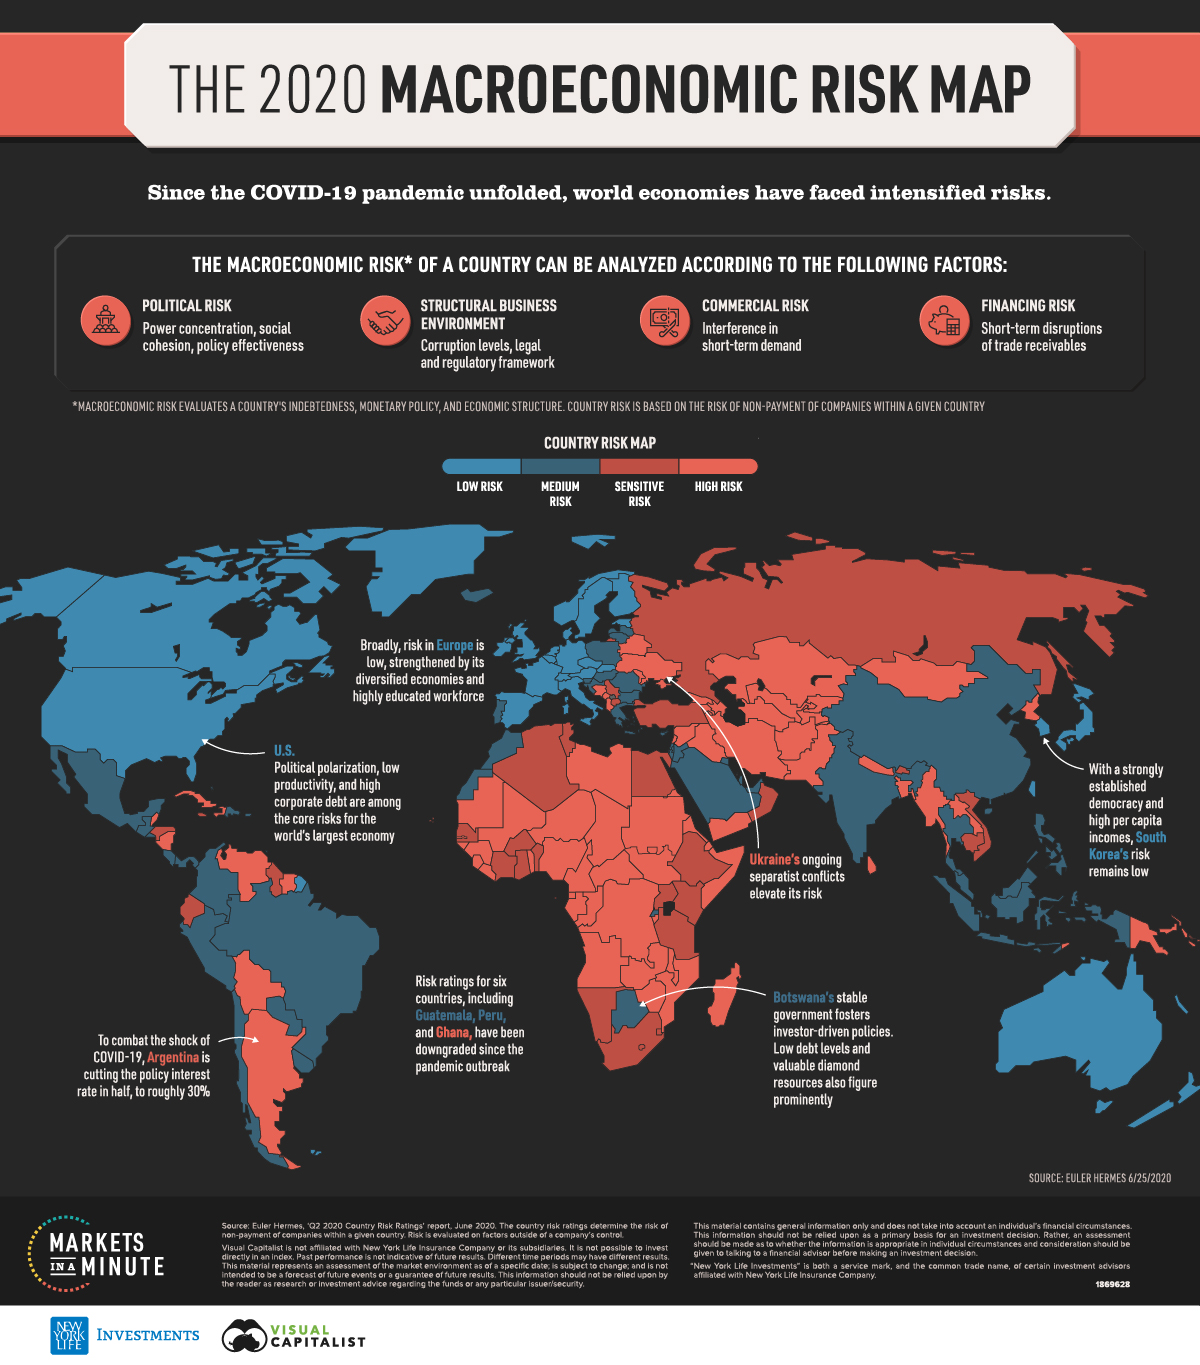 Macroeconomic Risk by Country